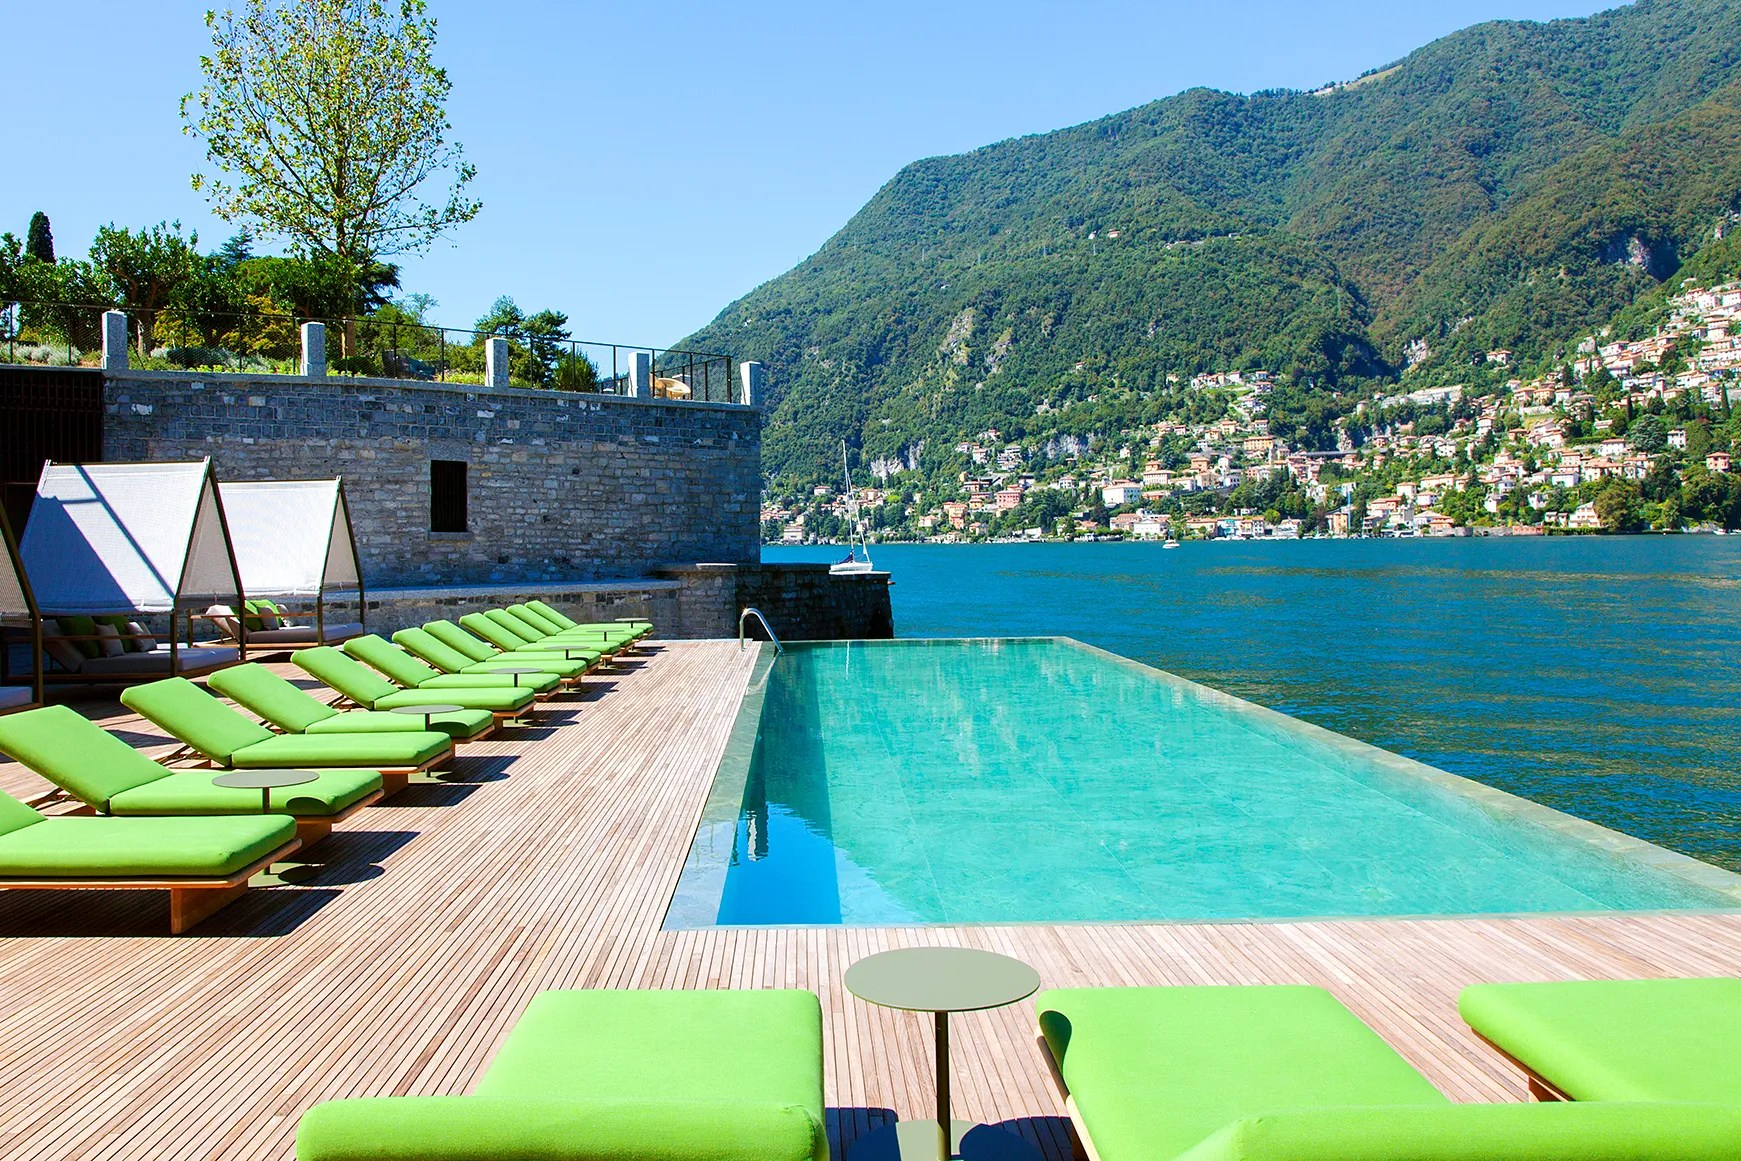 Cash Pool Italien Lake Como Is Now Home To Europe S Most Insane And Instagrammable